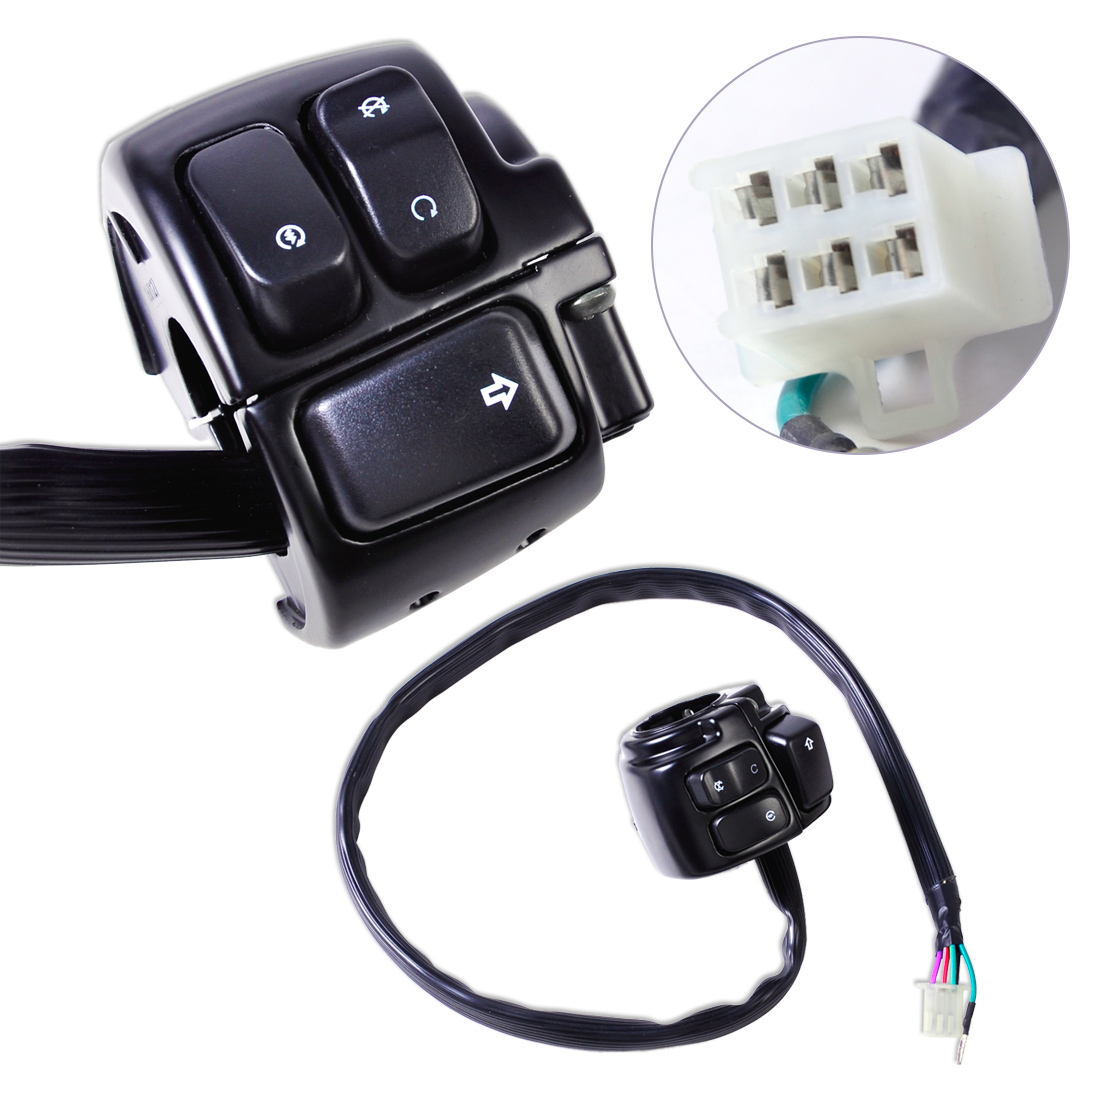 medium resolution of dwcx new motorcycle 1 handlebar ignition kill switch wiring harness for harley davidson softail dyna sportster 1200 883 v rod in motorcycle switches from